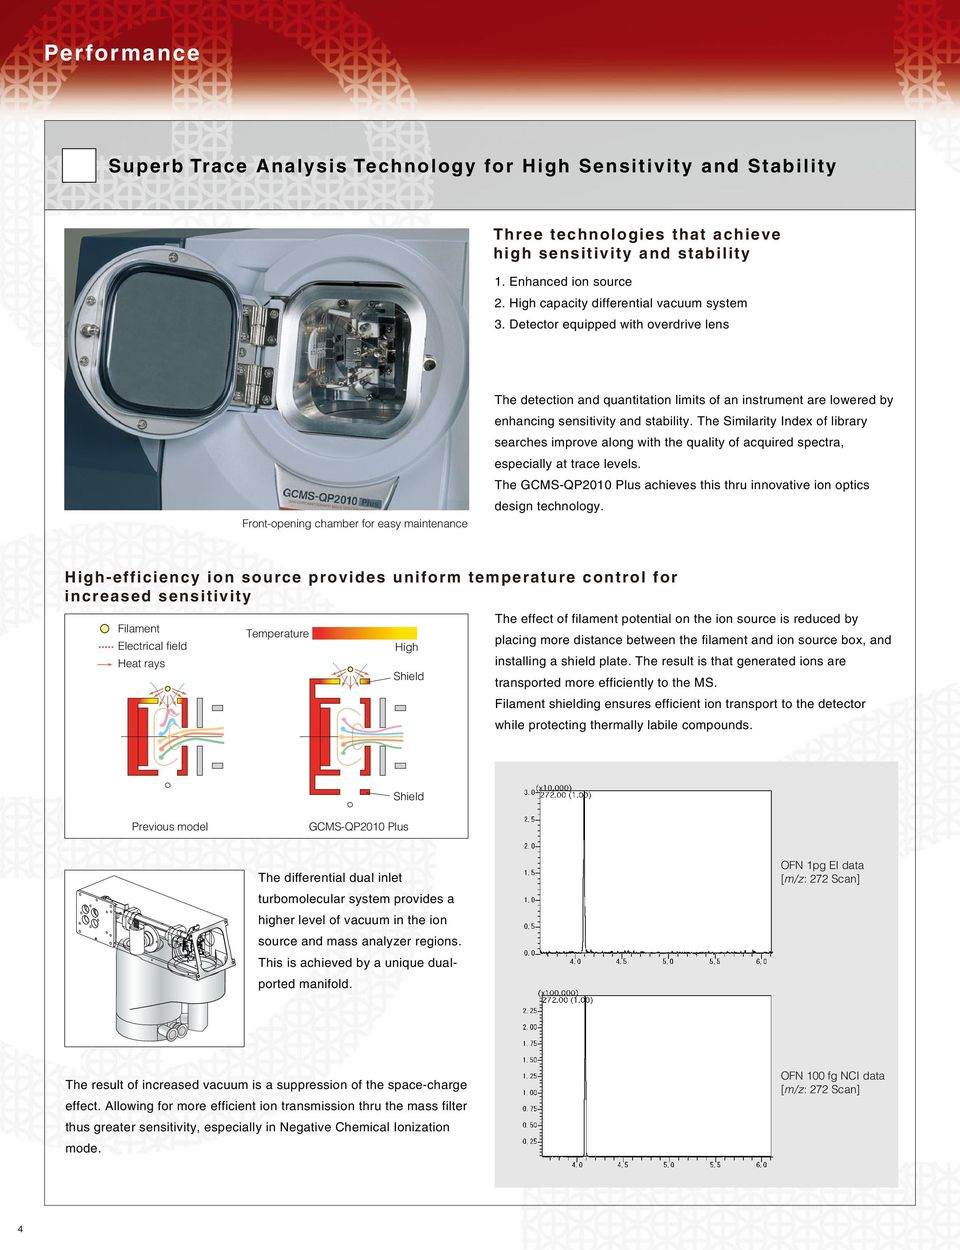 Detector equipped with overdrive lens Front-opening chamber for easy maintenance The detection and quantitation limits of an instrument are lowered by enhancing sensitivity and stability.